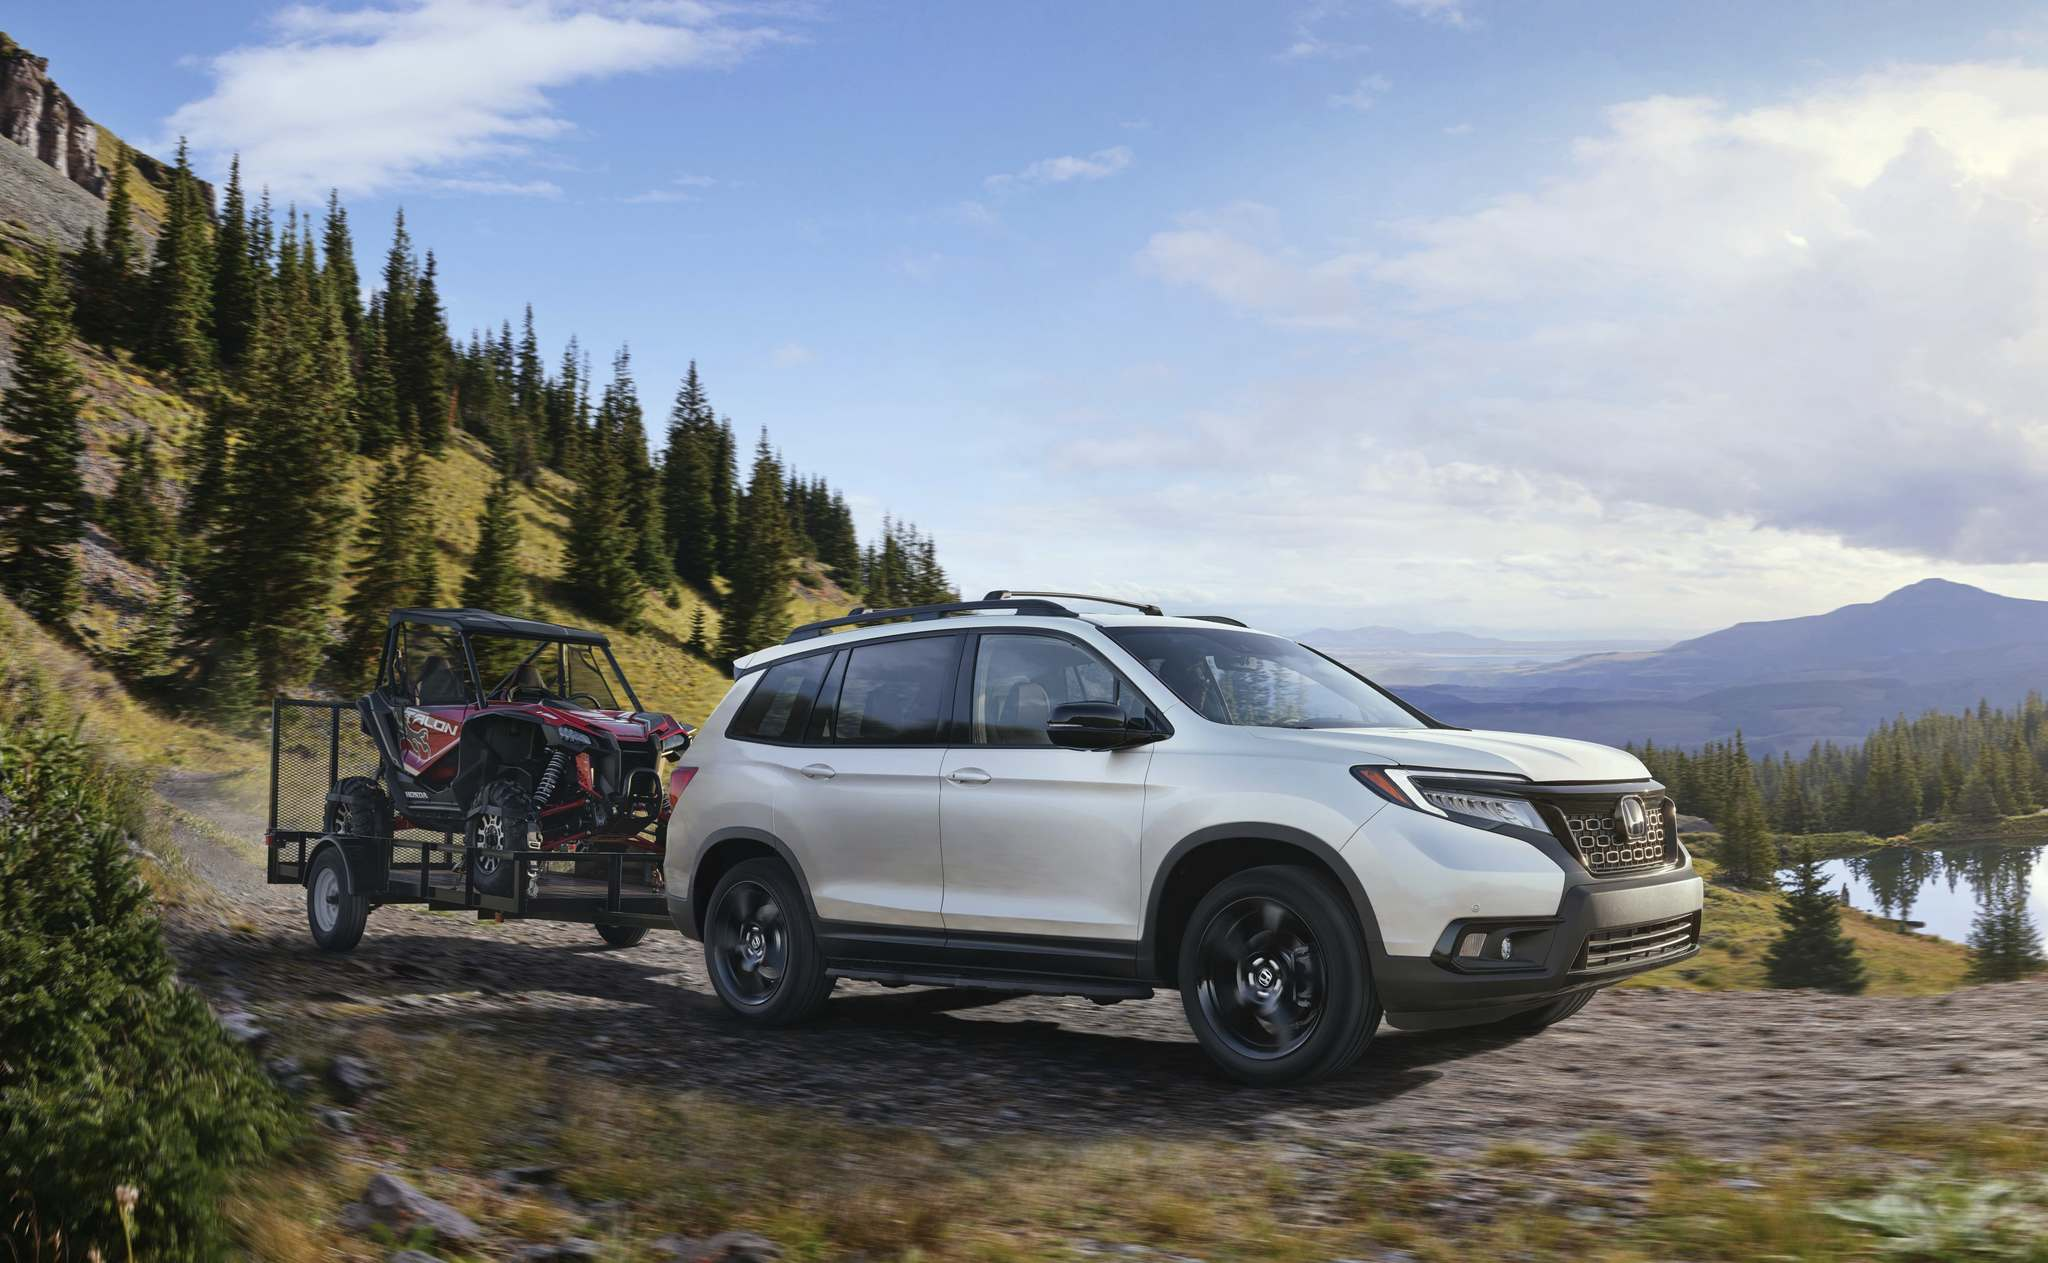 Honda photosThe 2019 Honda Passport is powered by a 3.5-litre V-6 engine, mated to a nine-speed automatic transmission, that delivers a smooth ride with plenty of power on tap.